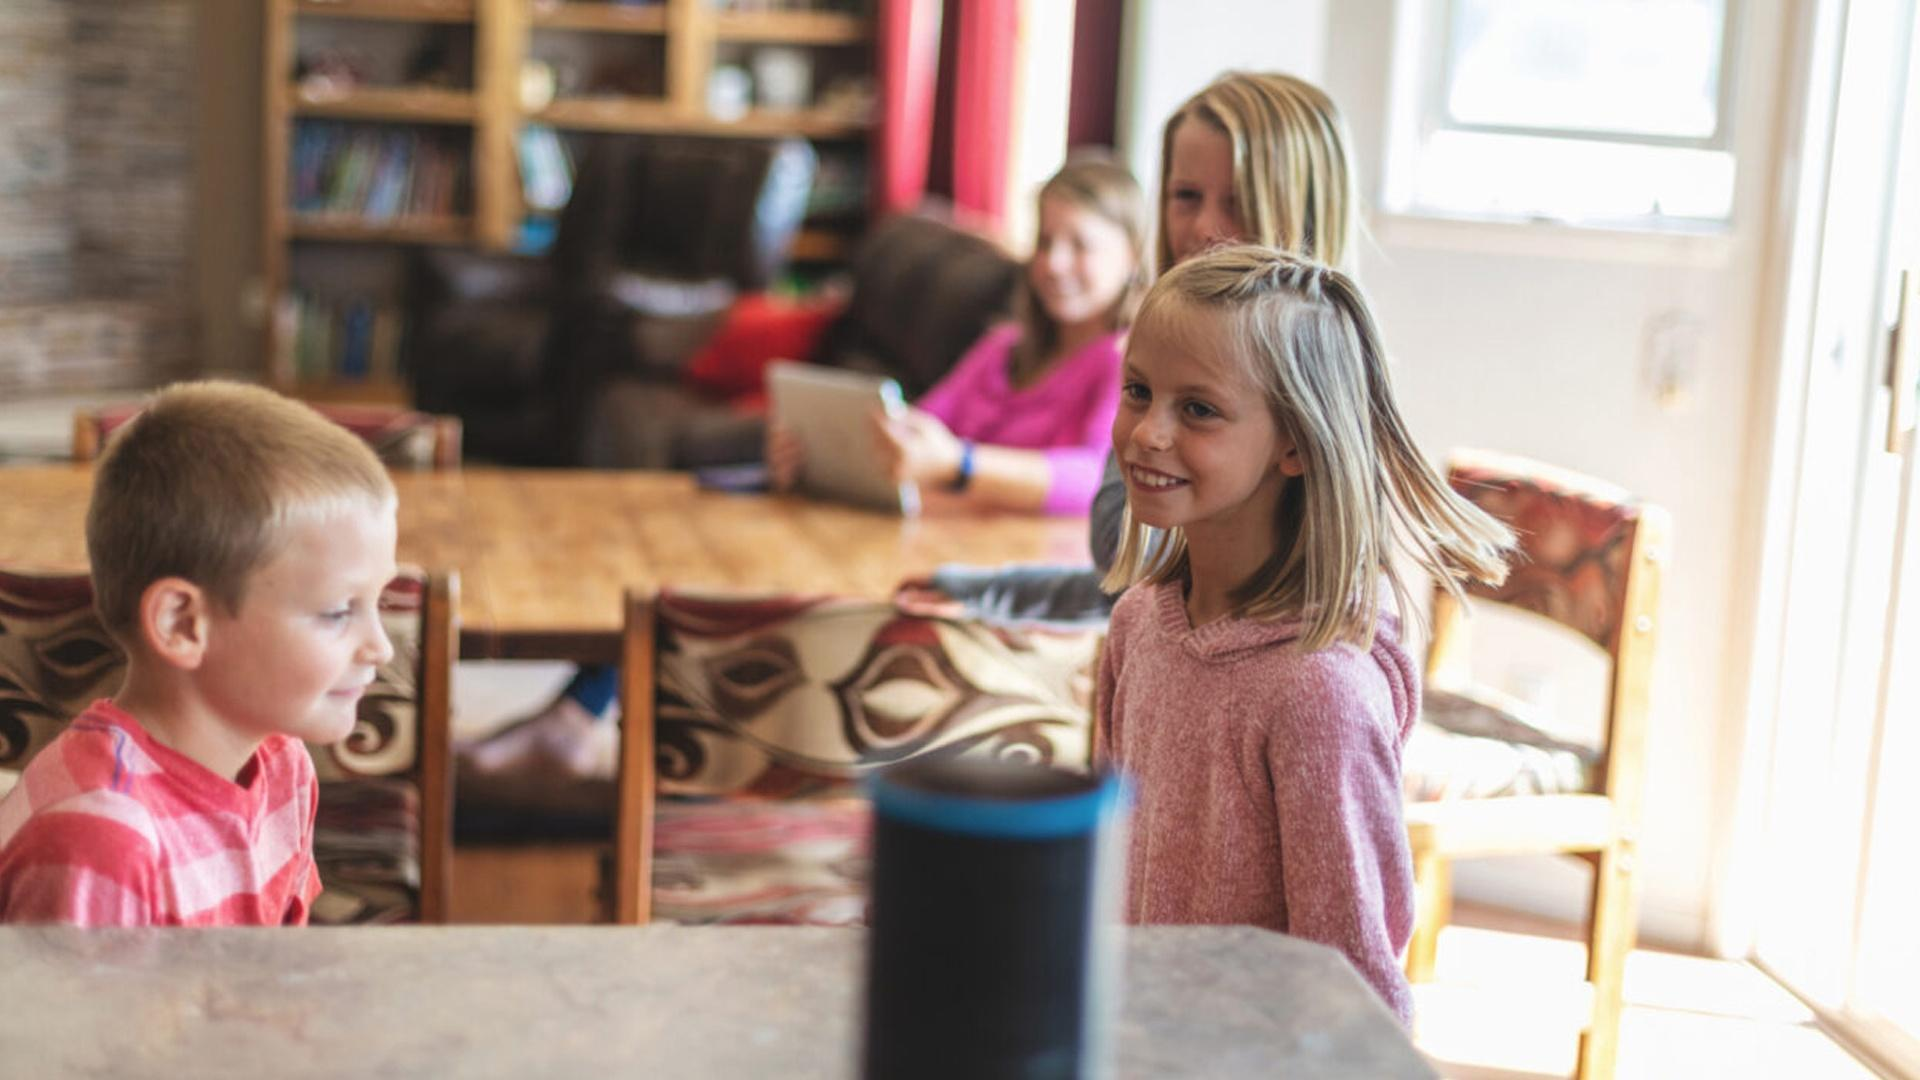 family with young children listening to a smart speaker